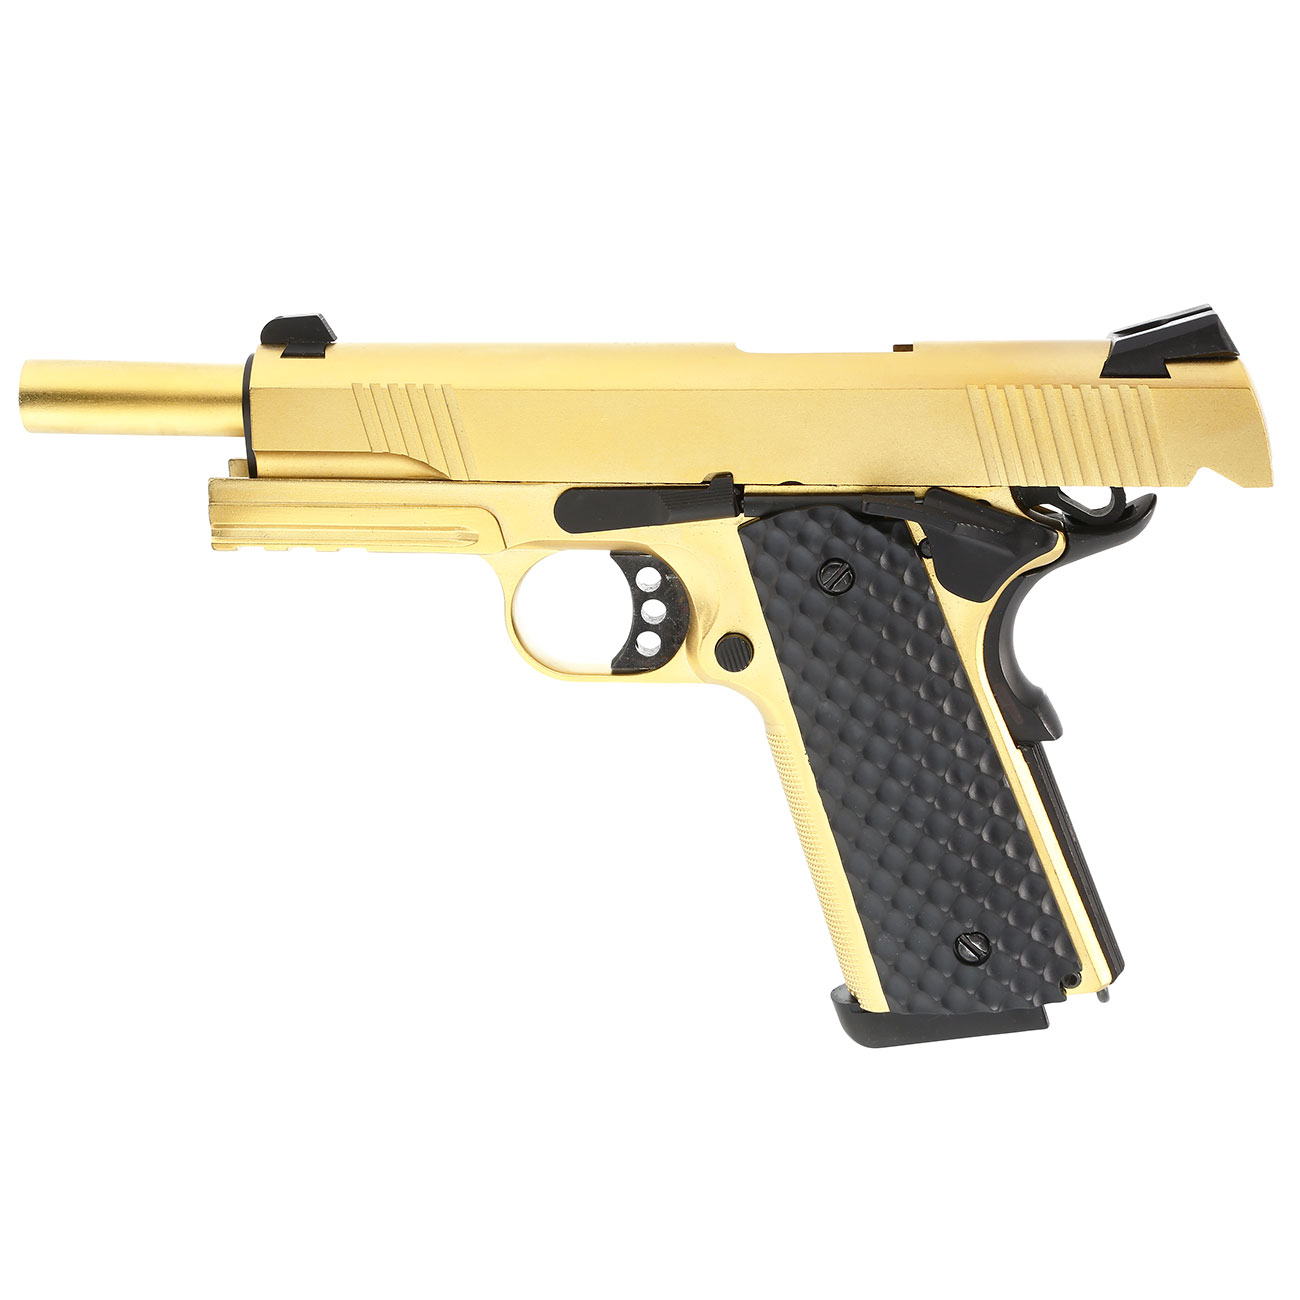 Nuprol Raven M1911 MEU Railed Vollmetall GBB 6mm BB gold 2